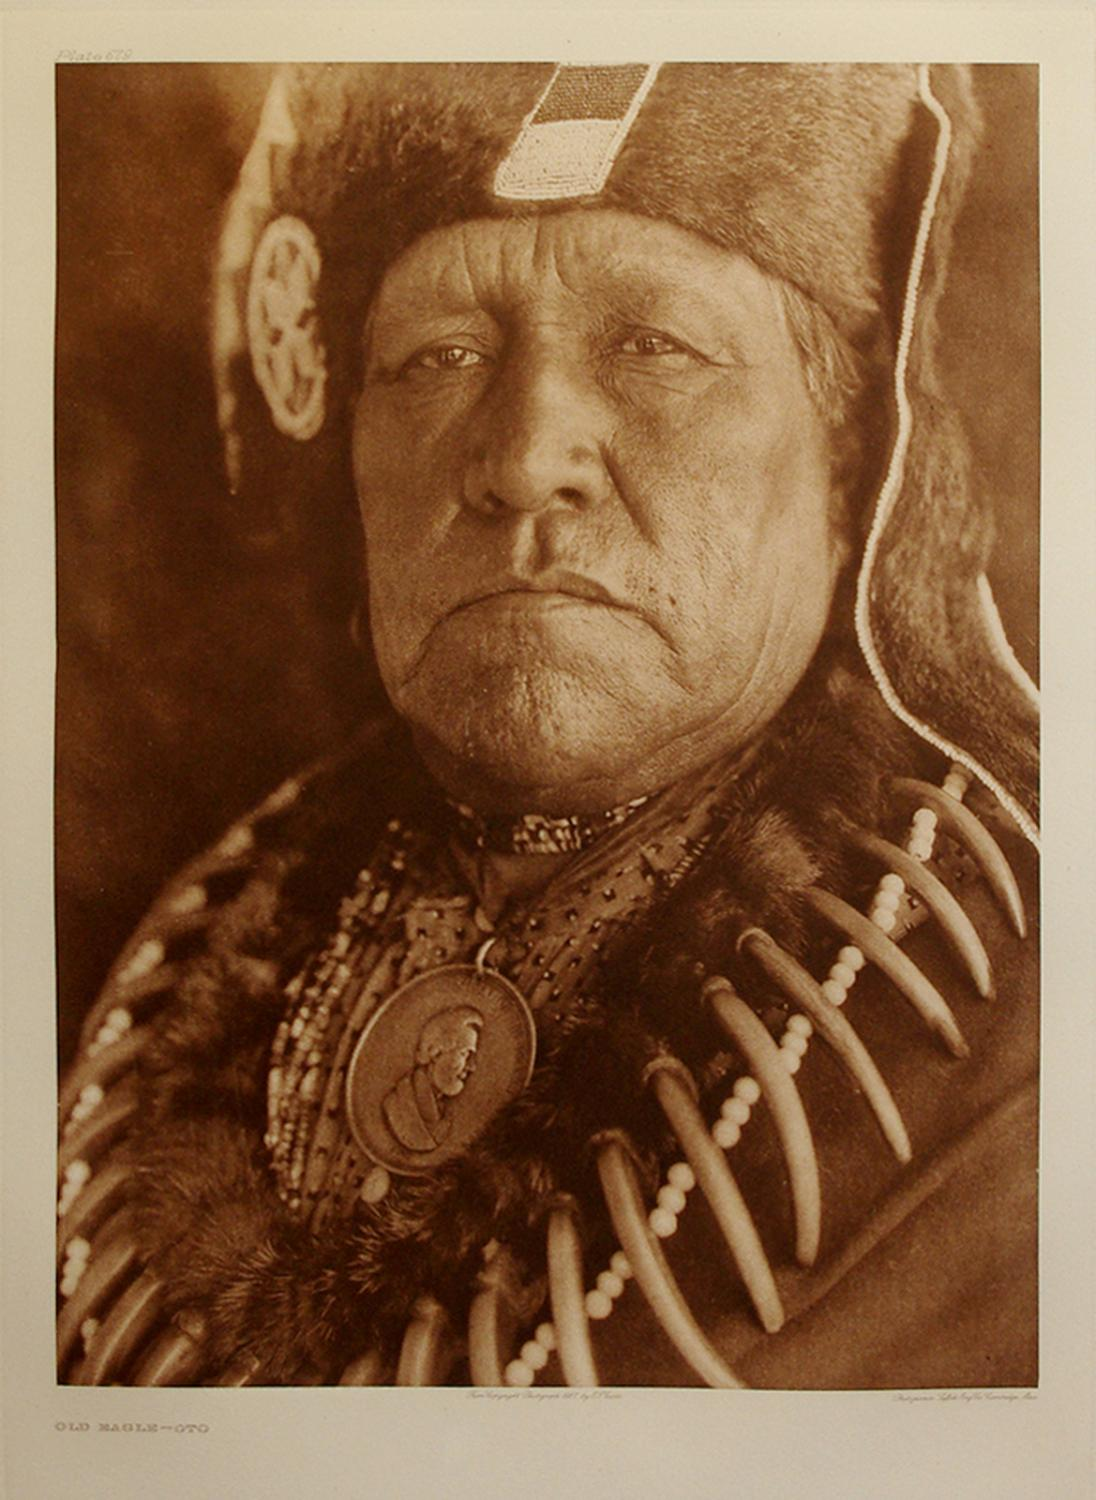 Old Eagle-Oto Pl. 679 from The North American Indian. Portfolio XIX: Edward S. Curtis (1868-1952)